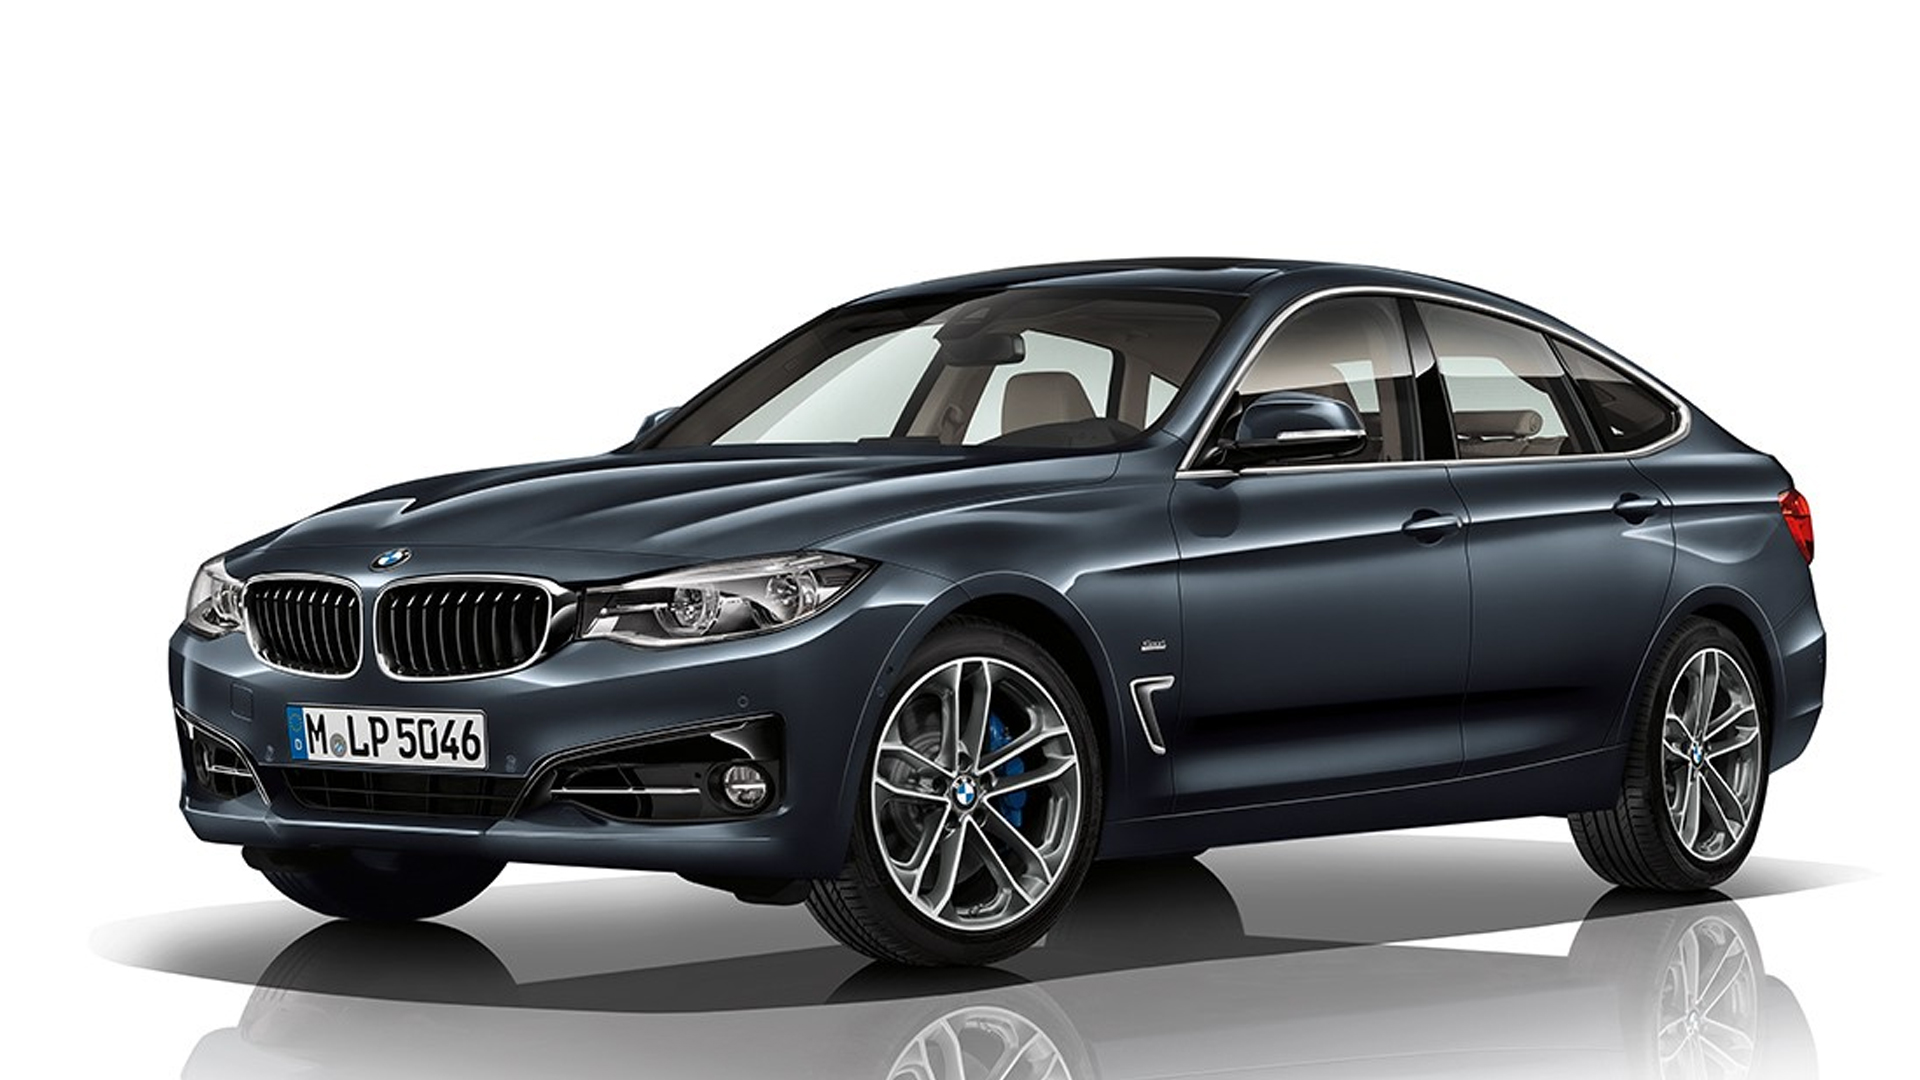 BMW 3 Series 2017 330i GT M Sport - Price. Mileage. Reviews. Specification. Gallery - Overdrive